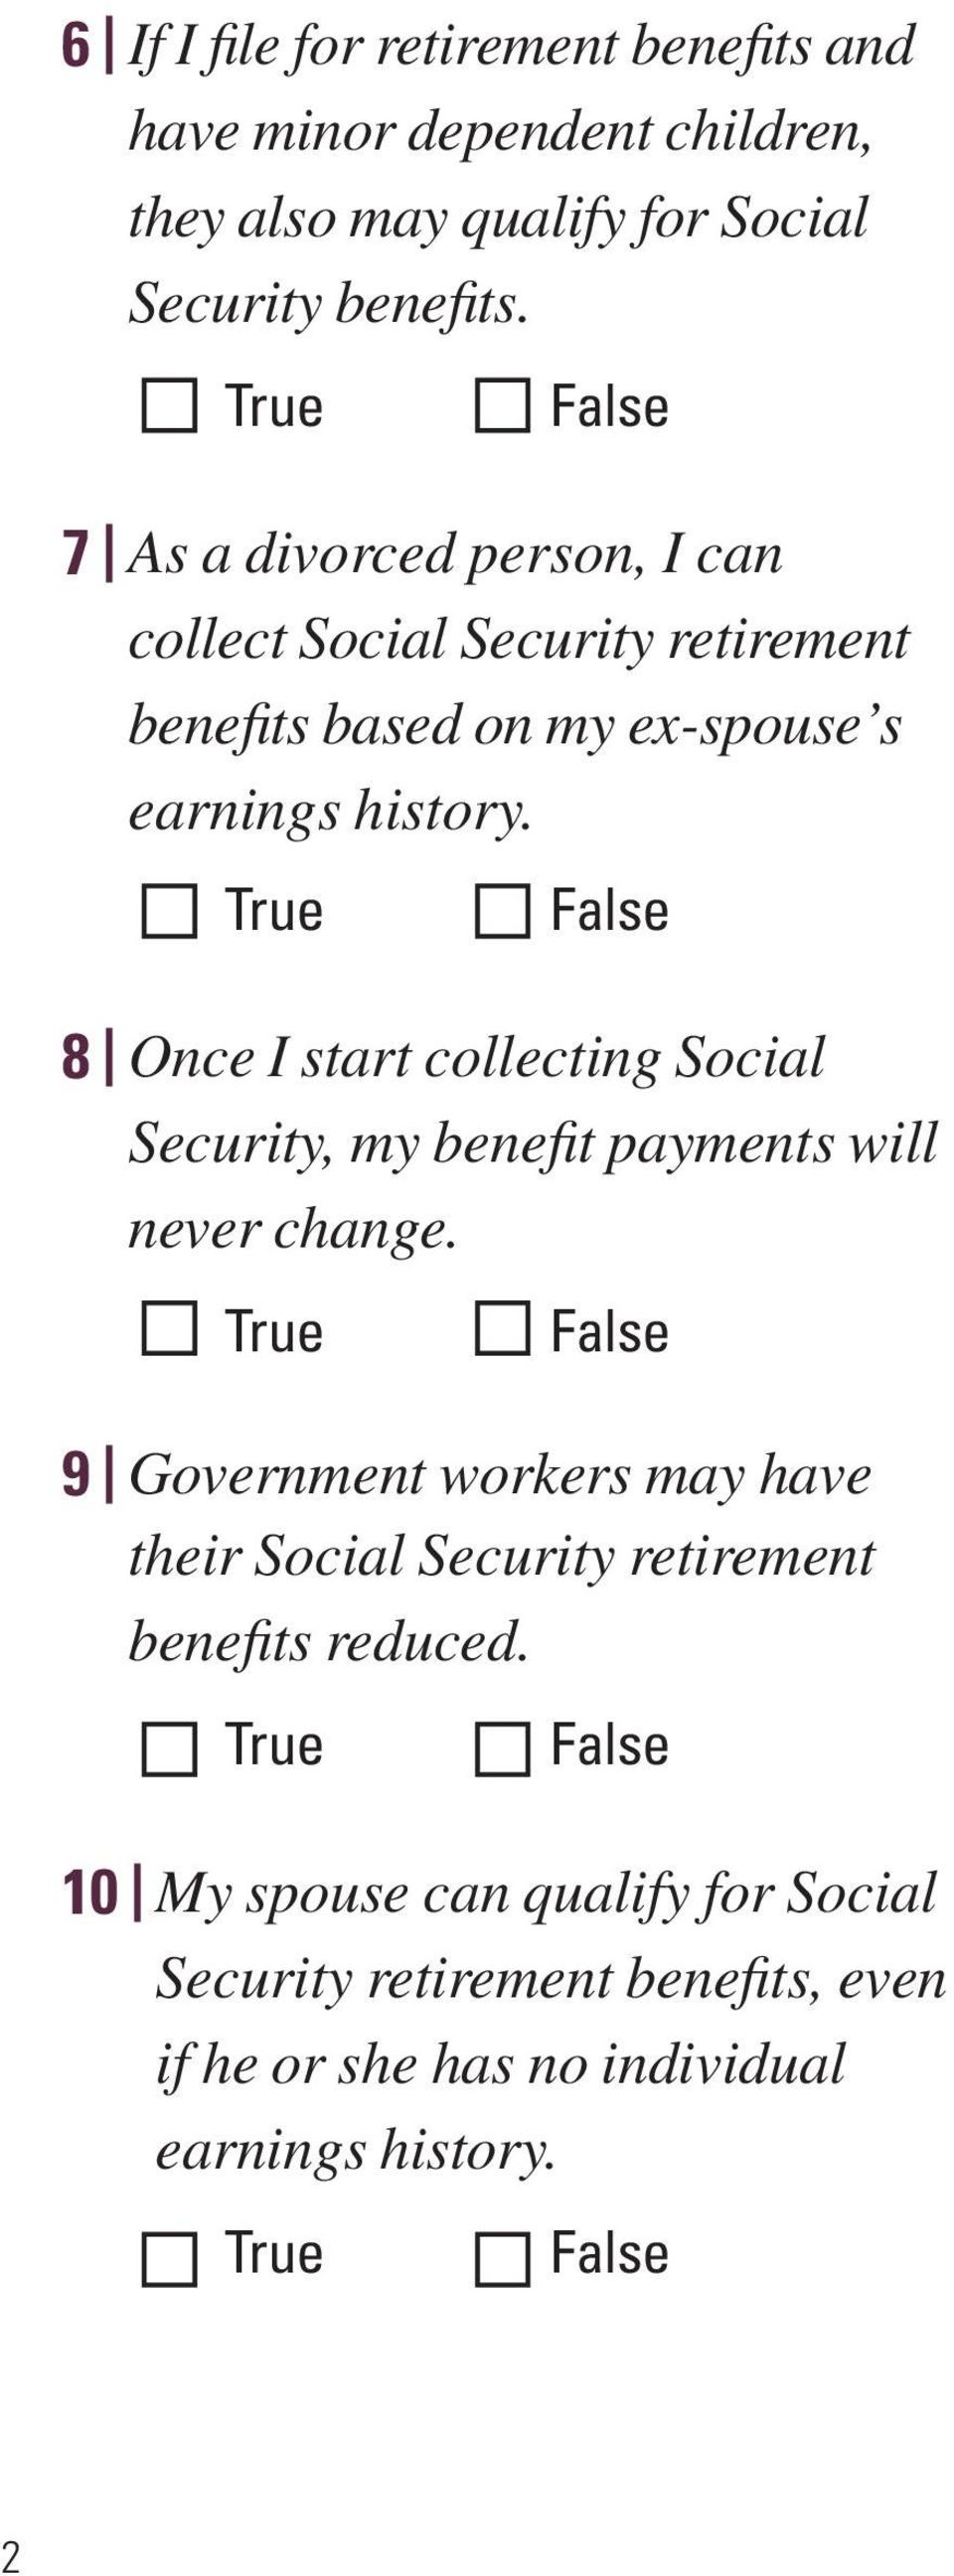 8 Once I start collecting Social Security, my benefit payments will never change.